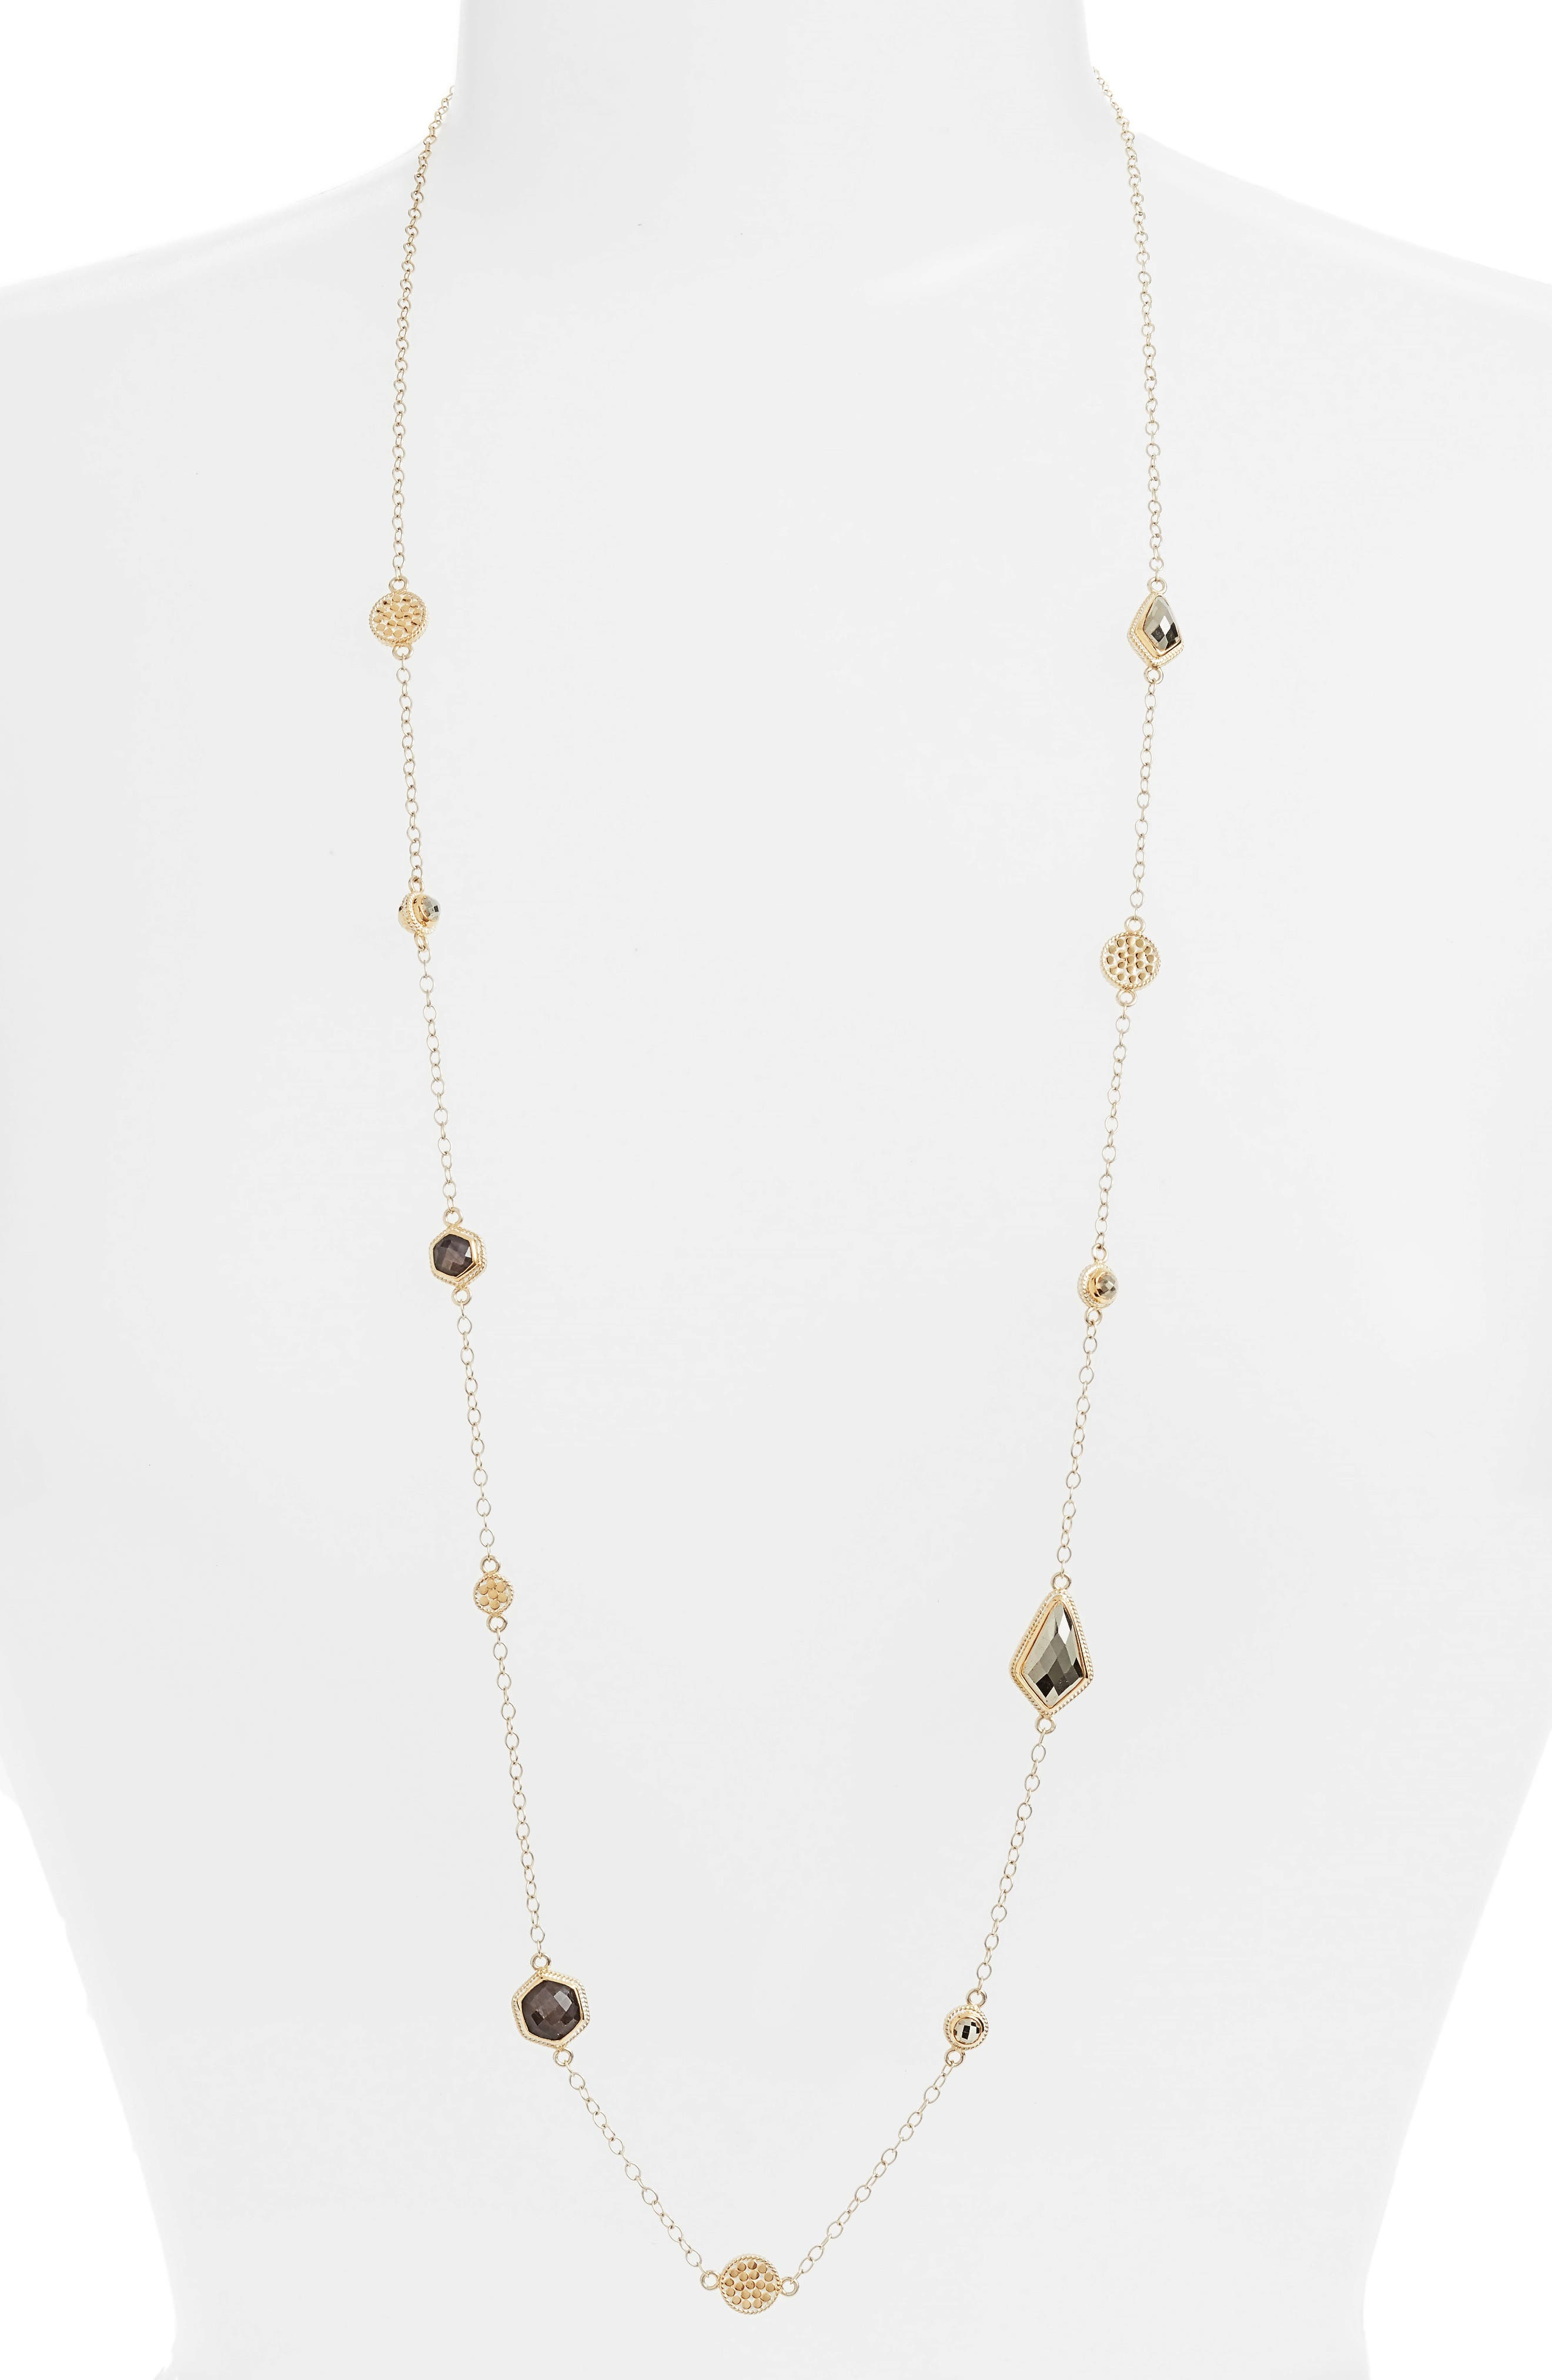 Grey Sapphire & Pyrite Long Station Necklace,                         Main,                         color, Gold/ Silver/ Grey/ Pyrite